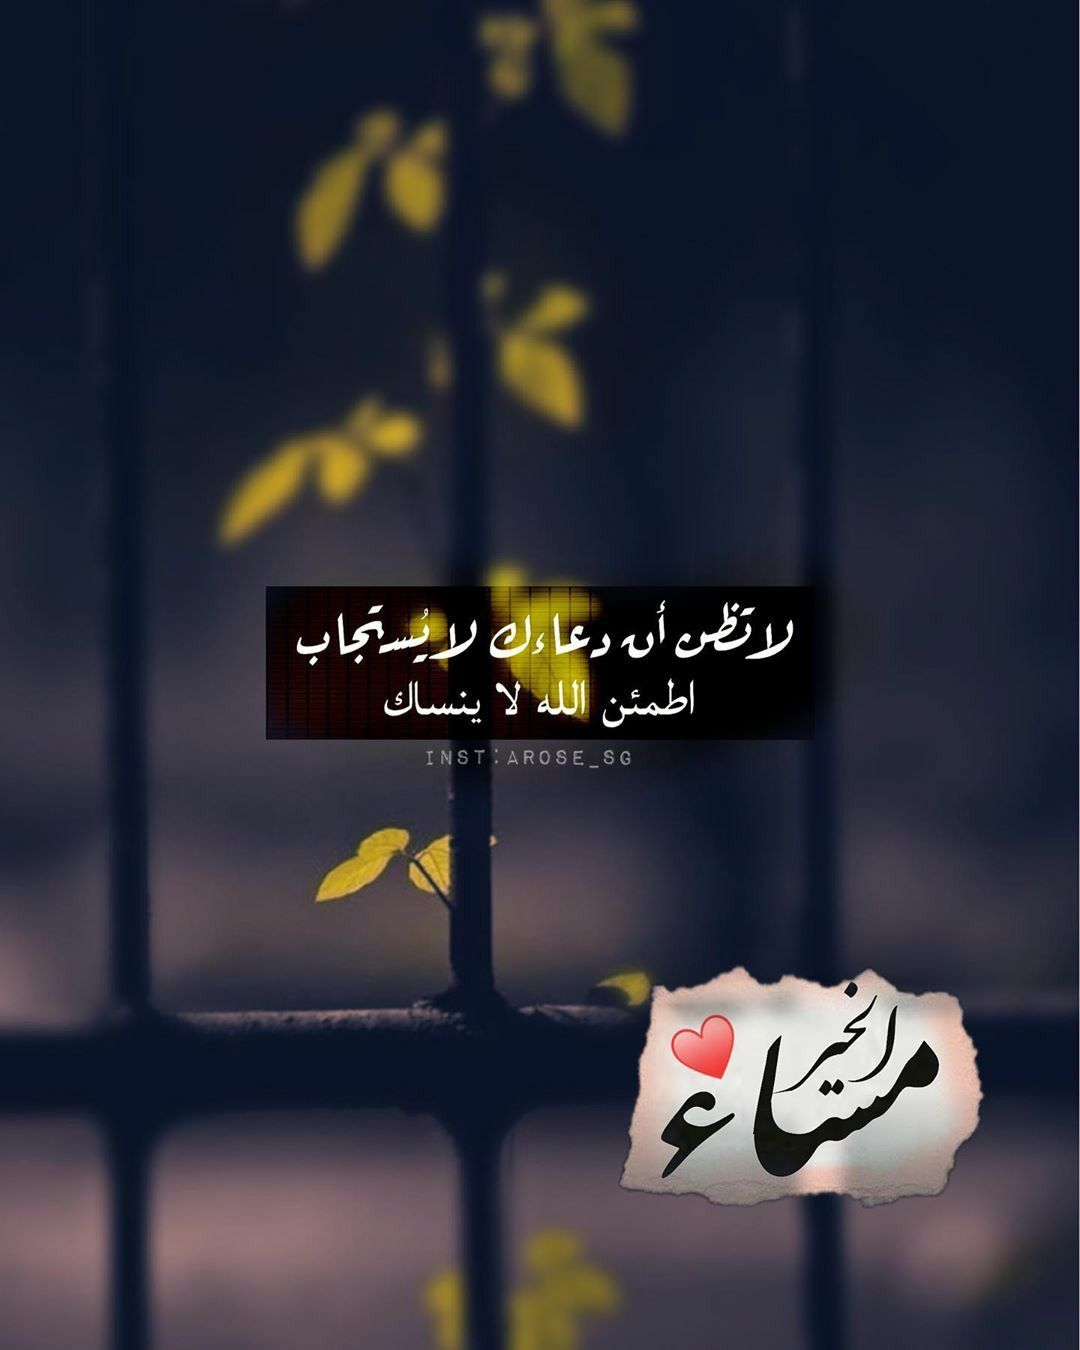 Pin By Wedad On انتم مسائي وأسعد الله مسائي Good Night Quotes Poster Night Quotes